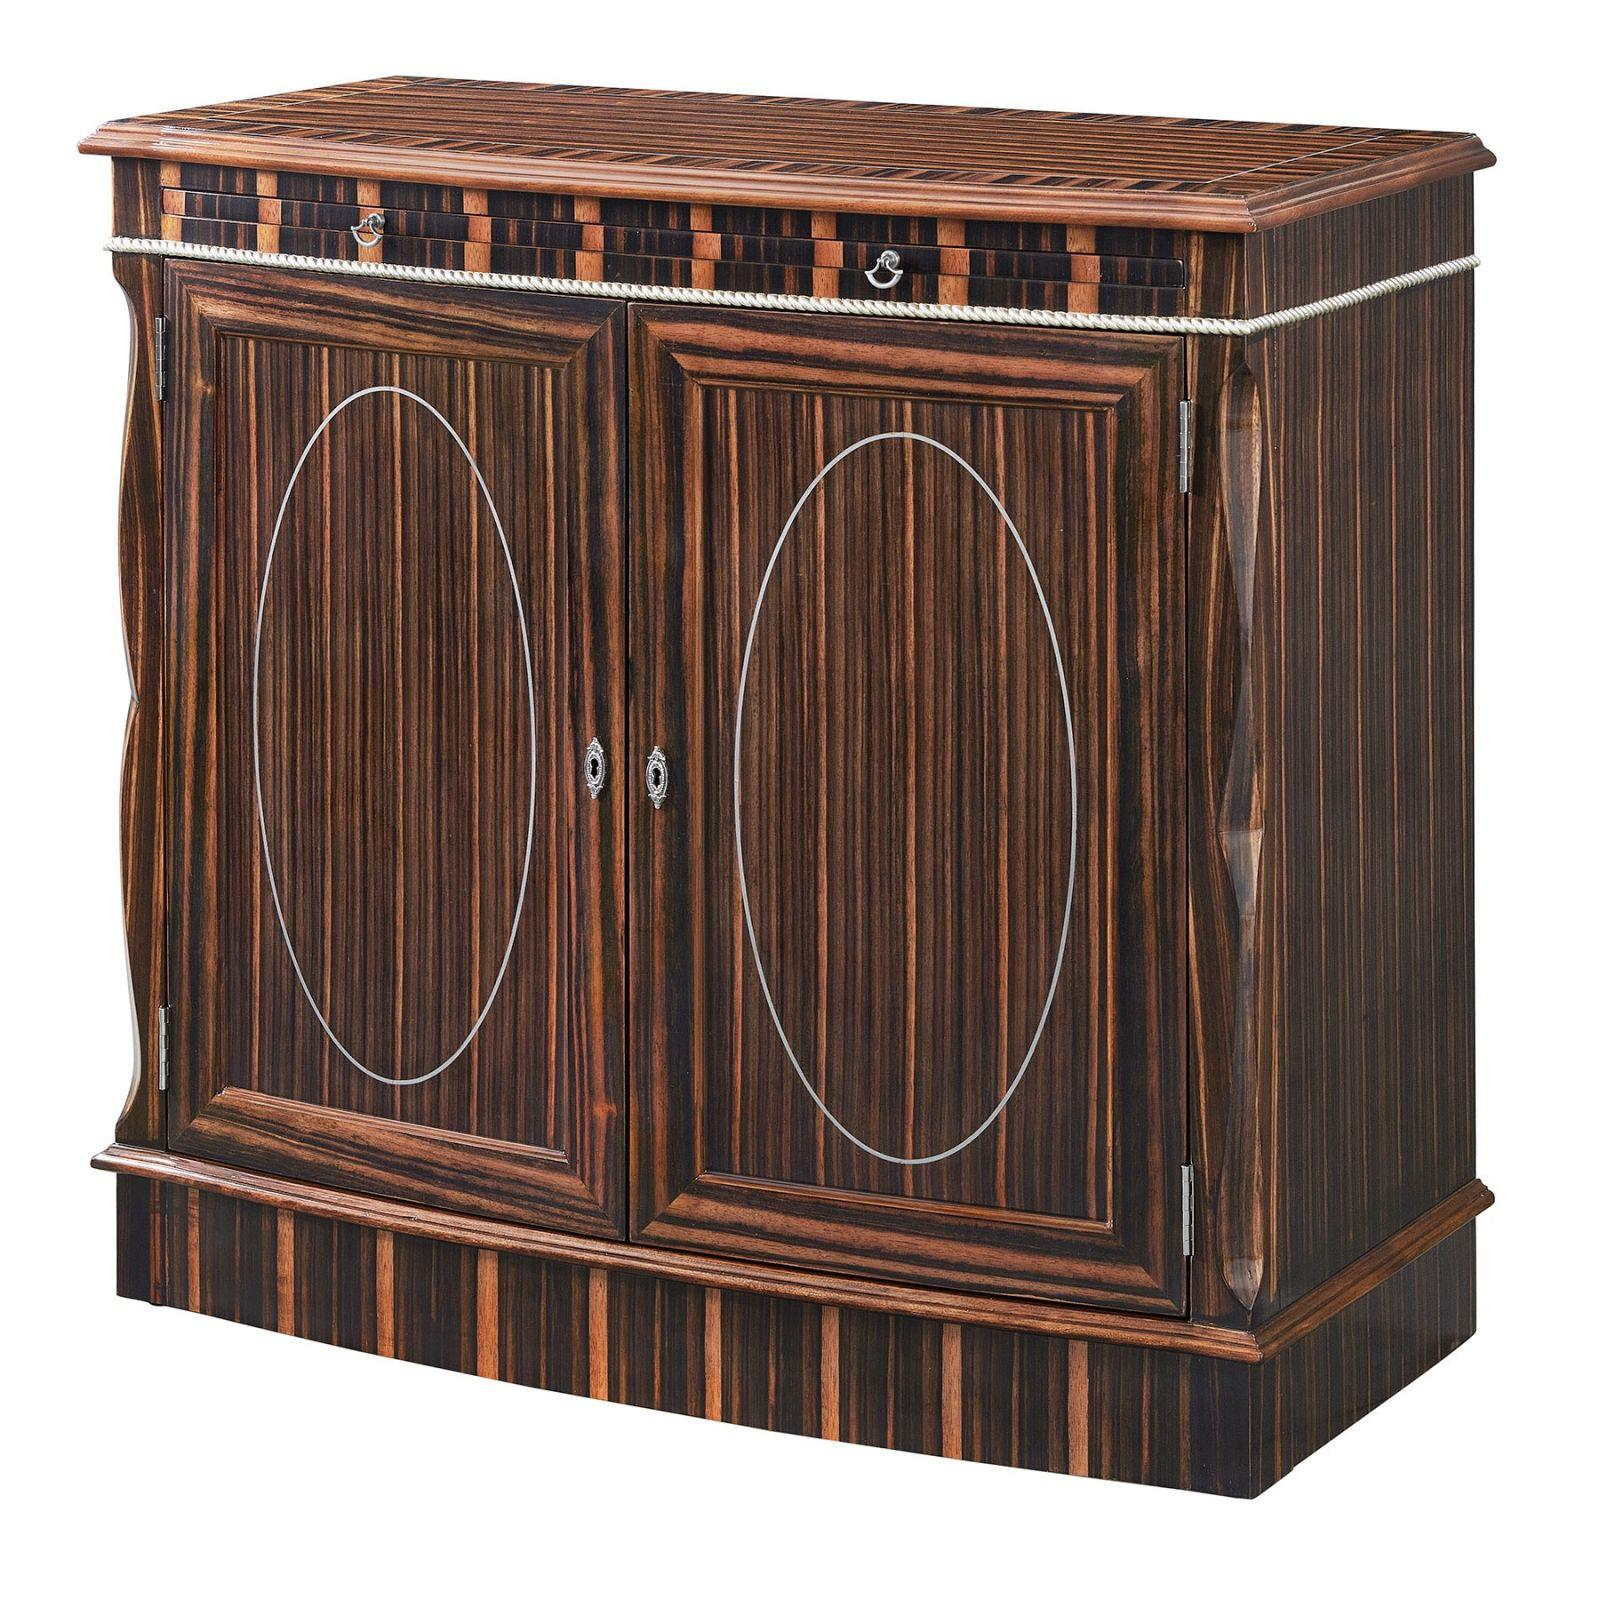 Bow fronted ebony side cabinet